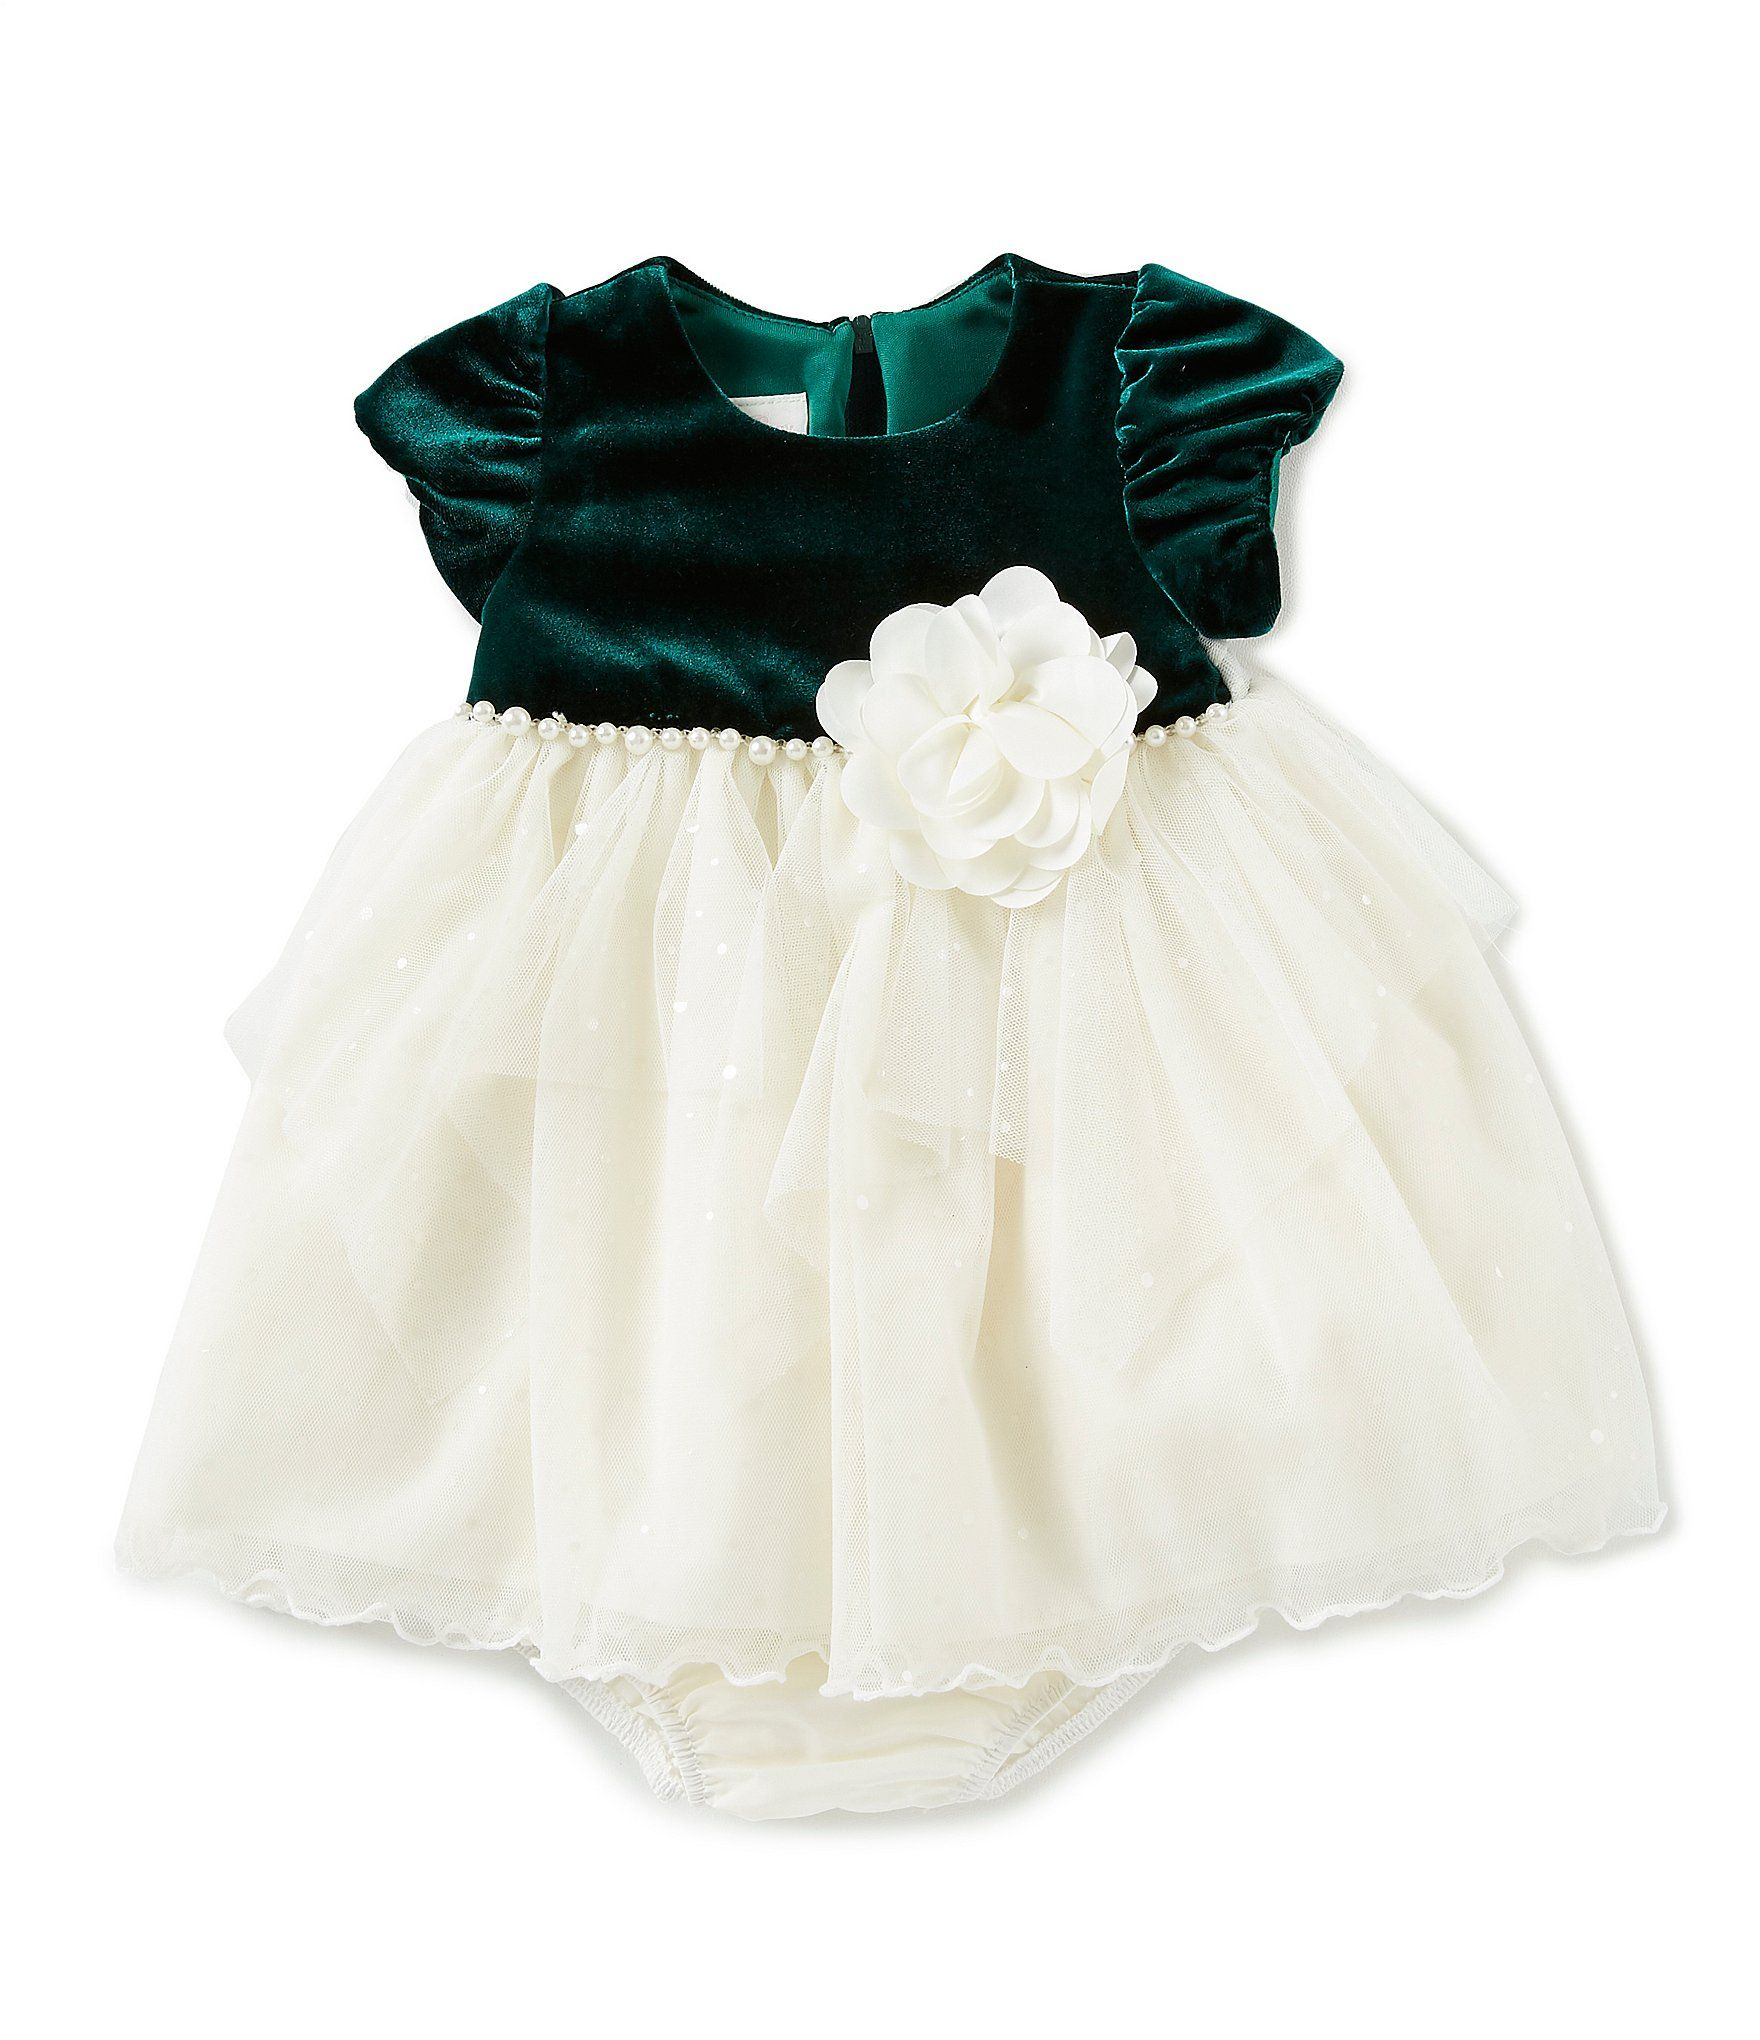 5b02d0bbe9b Shop for Bonnie Jean Baby Girls Newborn-24 Months Holiday Velvet/Mesh  Fit-And-Flare Dress at Dillards.com. Visit Dillards.com to find clothing,  accessories, ...